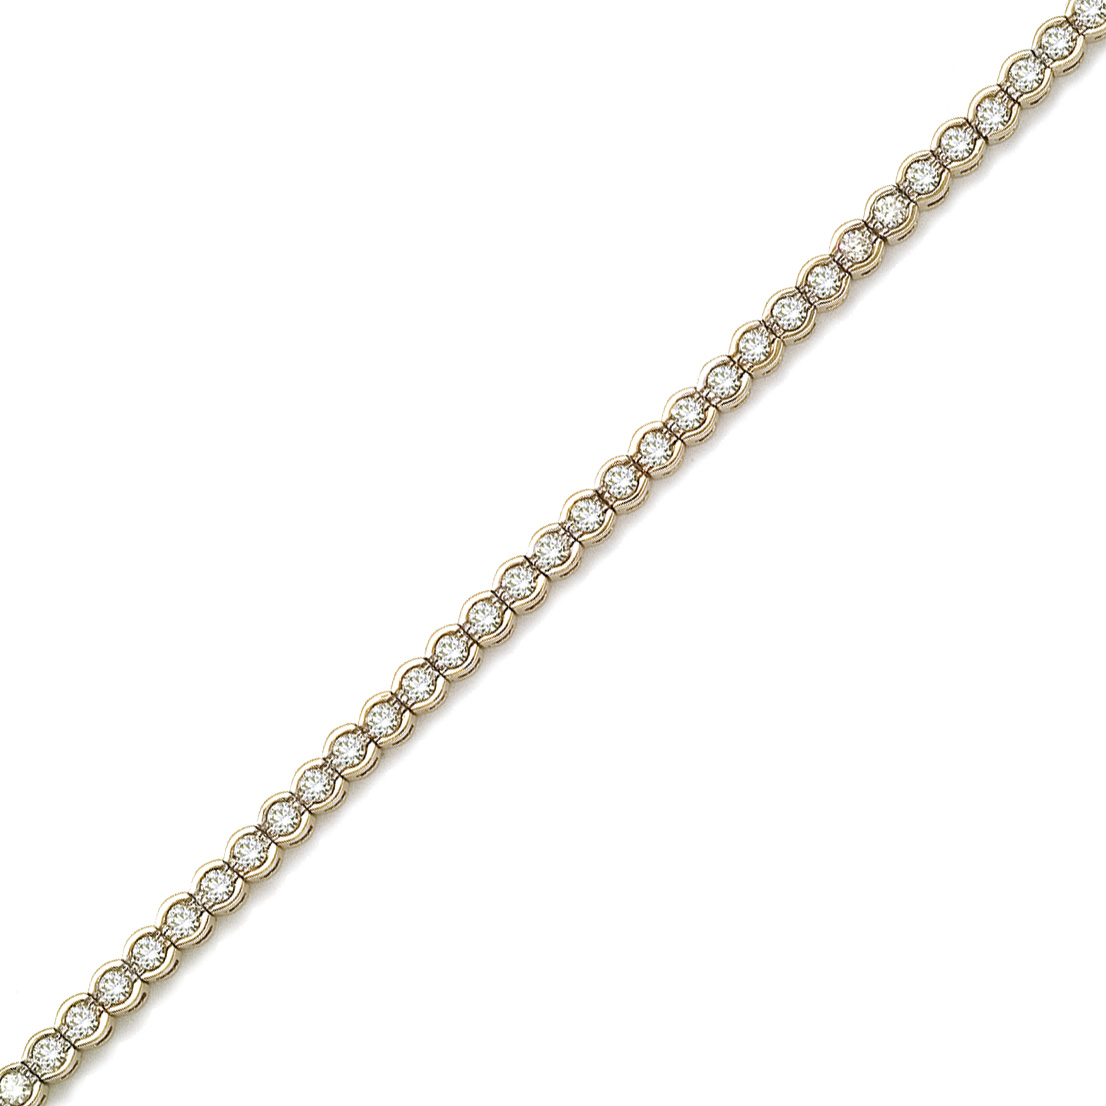 14K solid yellow gold tennis bracelet with natural round diamonds.  3.00 carat total weight of di...